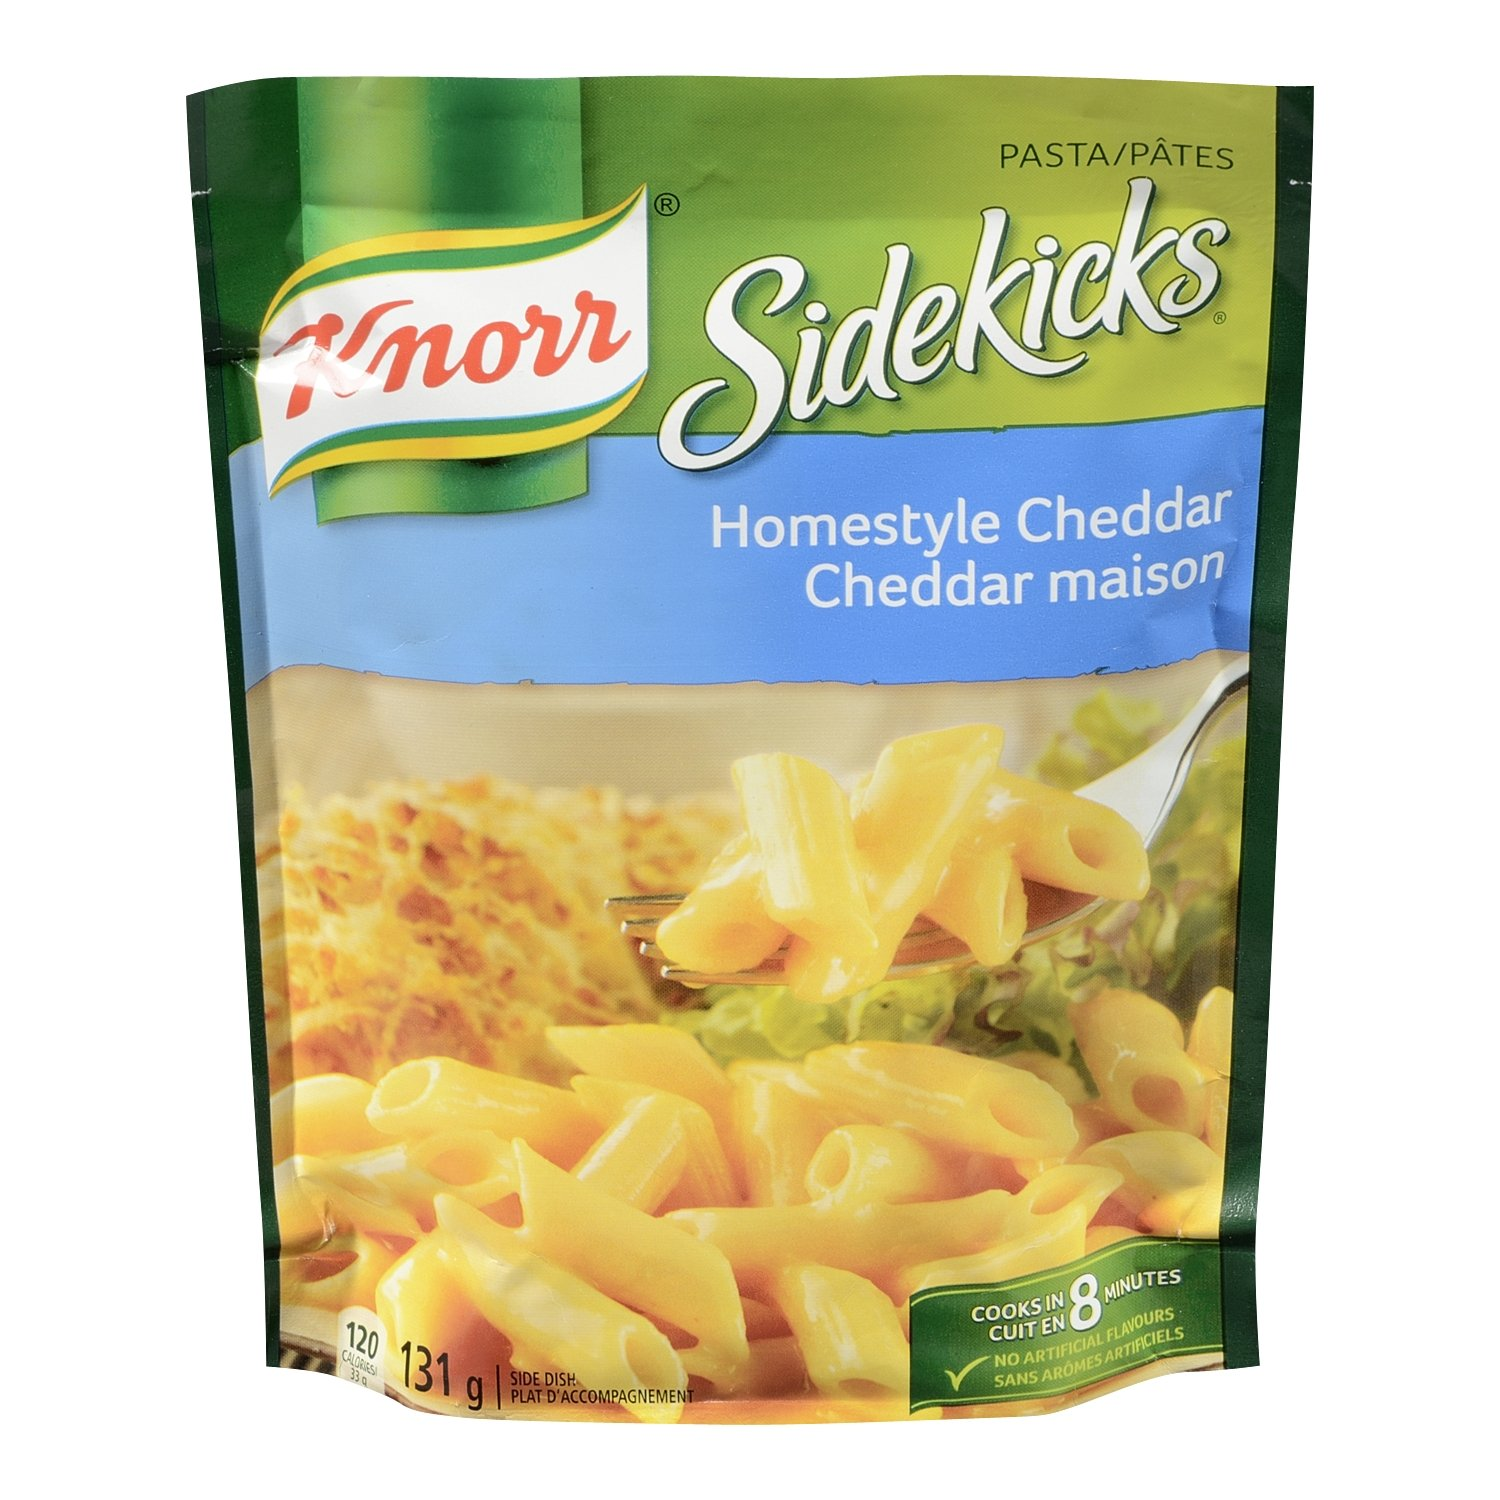 Knorr Pasta Homestyle Detroit Mall Cheddar Side Dishes 131g Complete Free Shipping 4.6 {Imp 8pk oz.